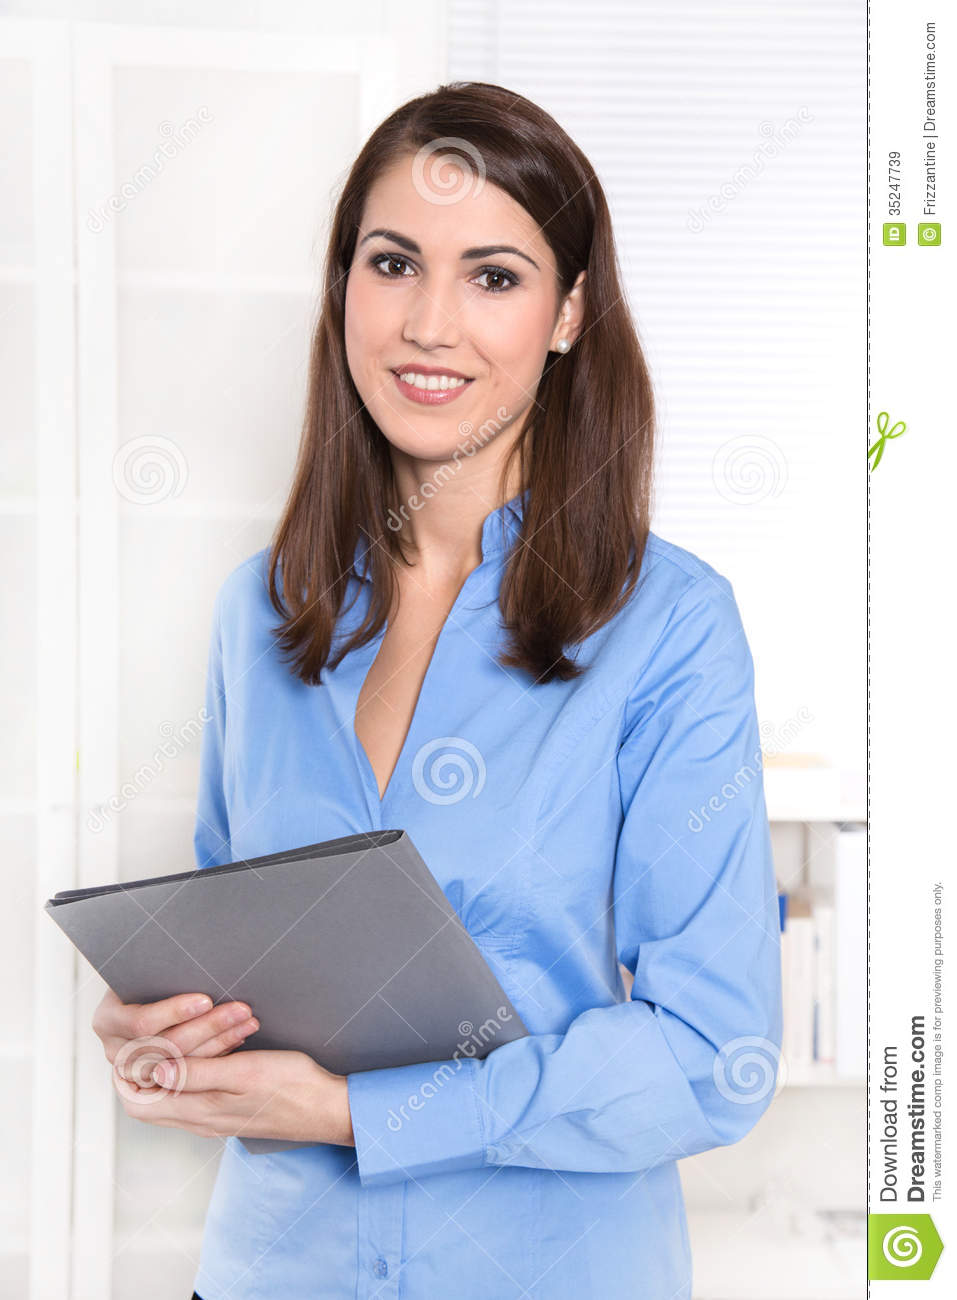 portrait of a smiling young businessw in a blue blouse is go portrait of a smiling young businessw in a blue blouse is go